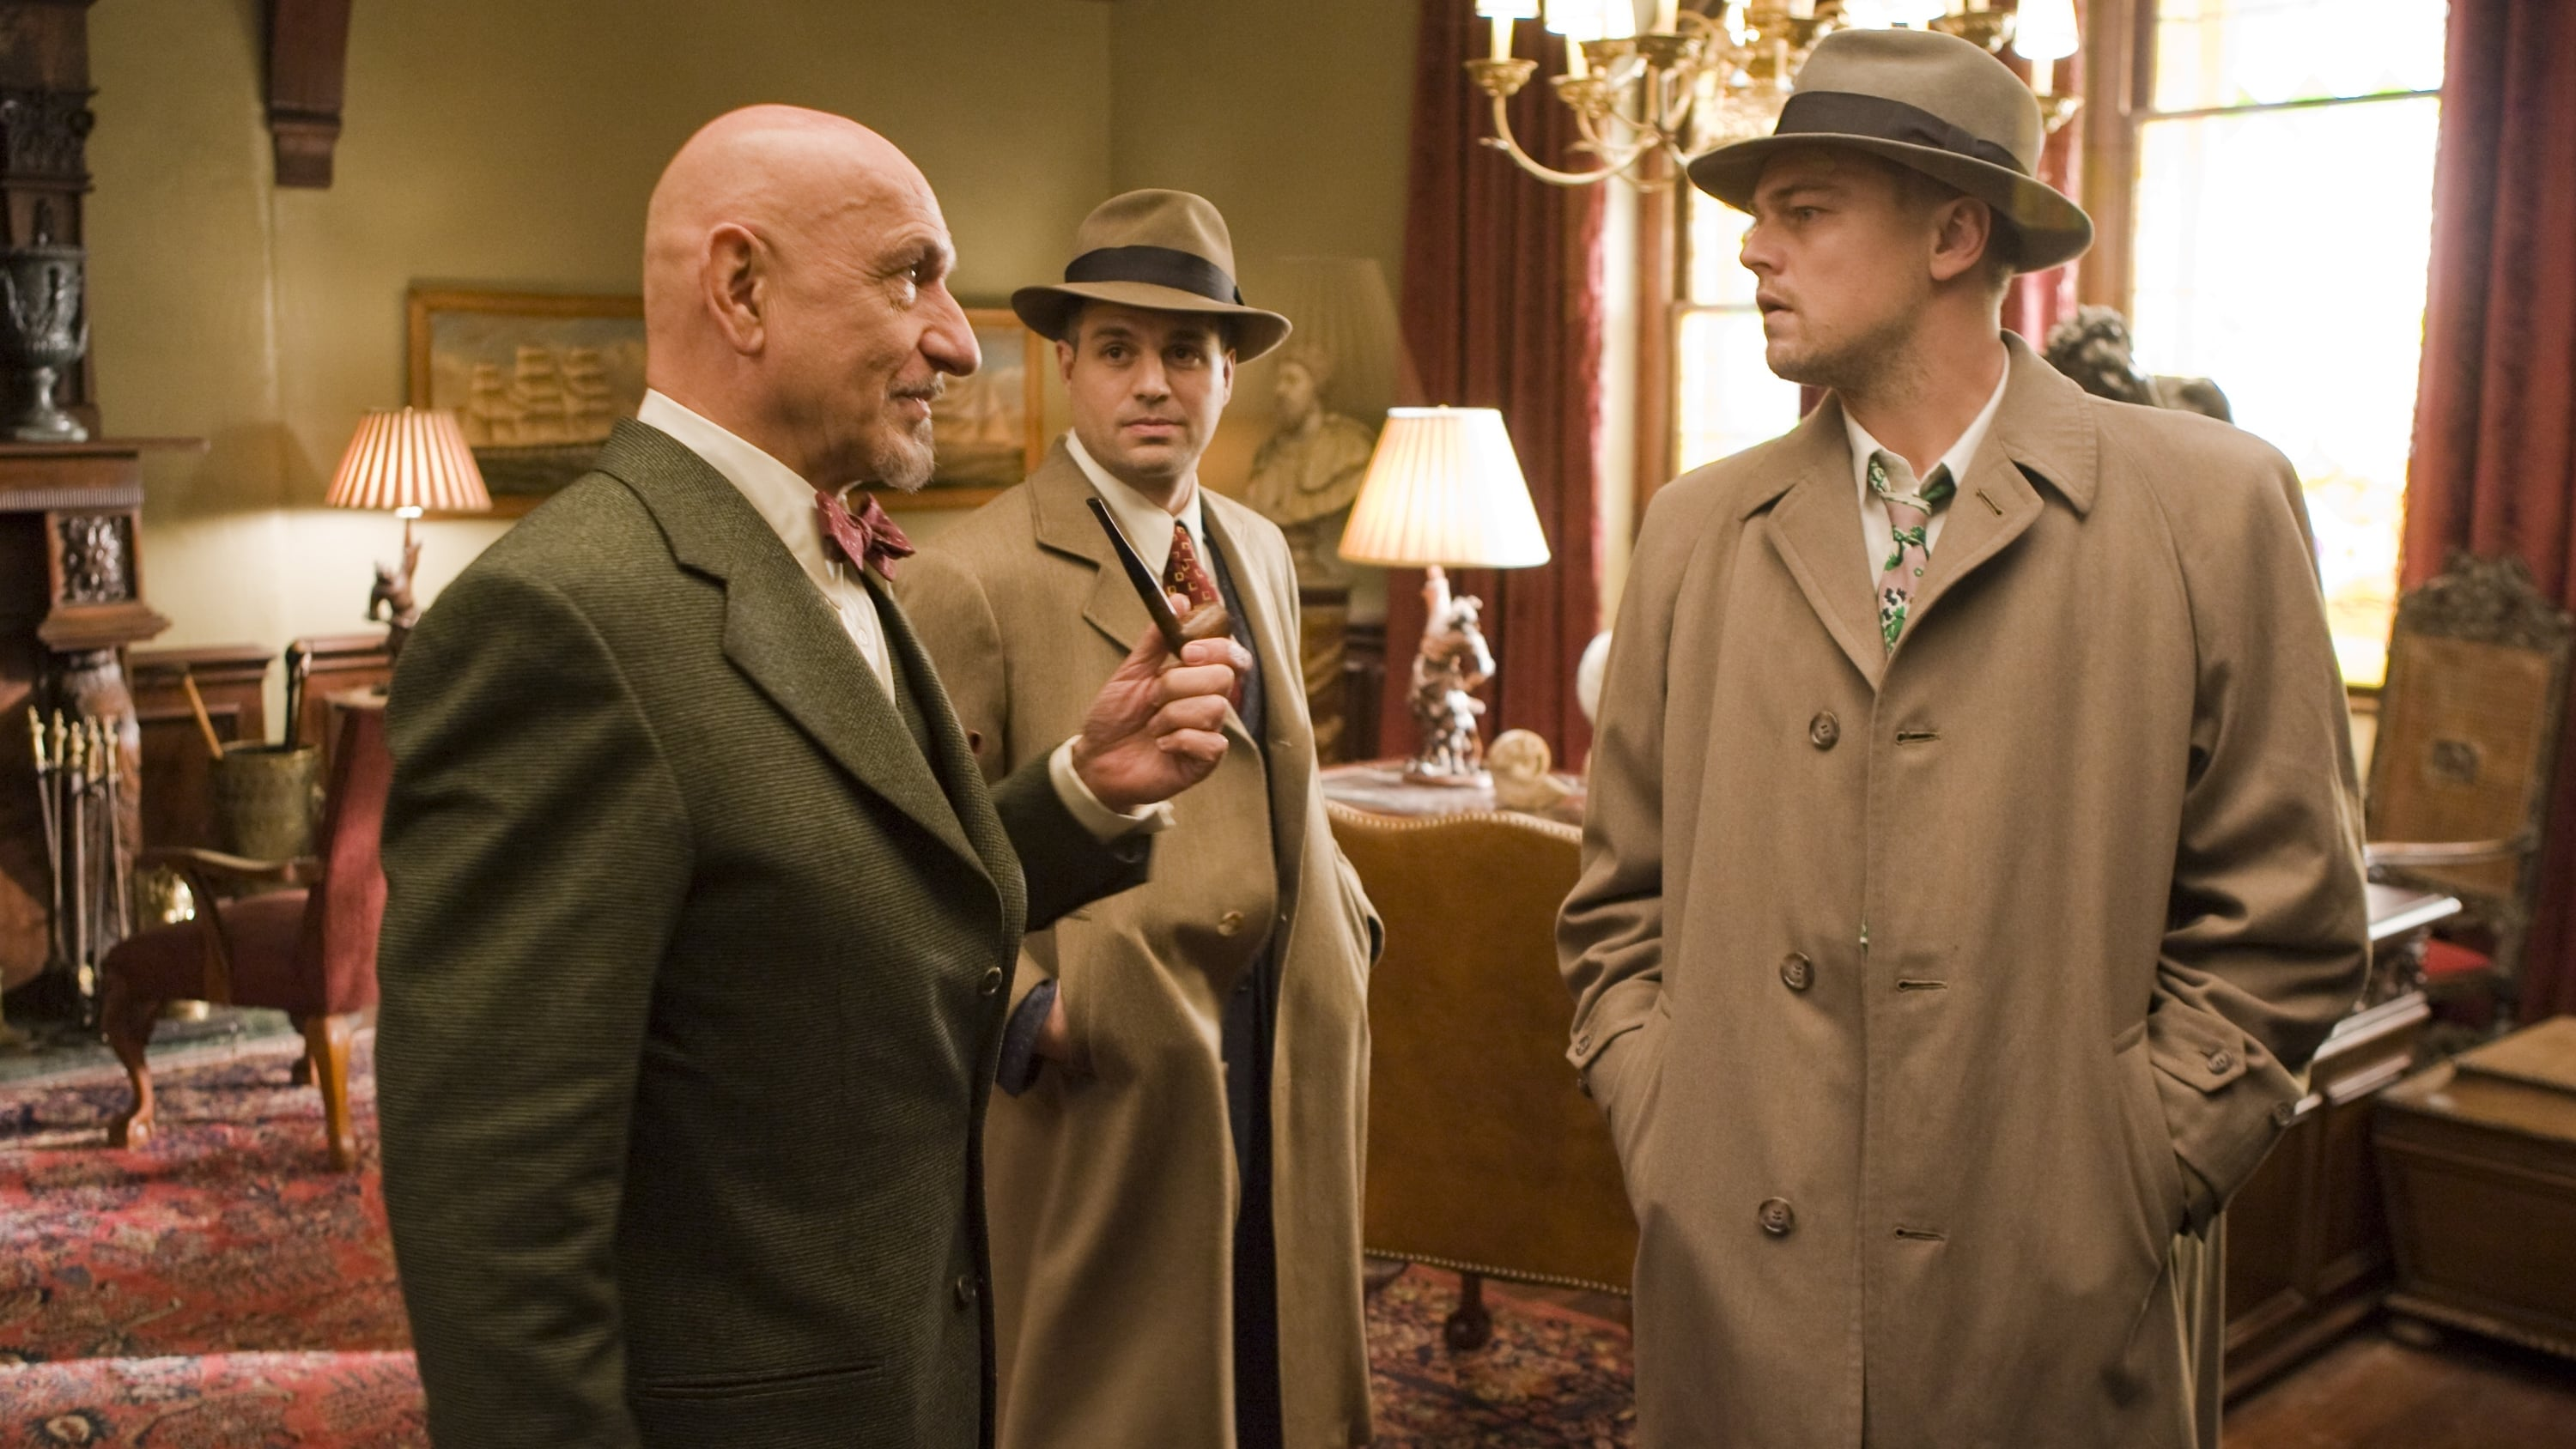 Federal marshal Teddy Daniels (Leonardo DiCaprio) and partner Chuck Aule (Mark Ruffalo) question asylum head Dr Cawley (Ben Kingsley) in Shutter Island (2010)